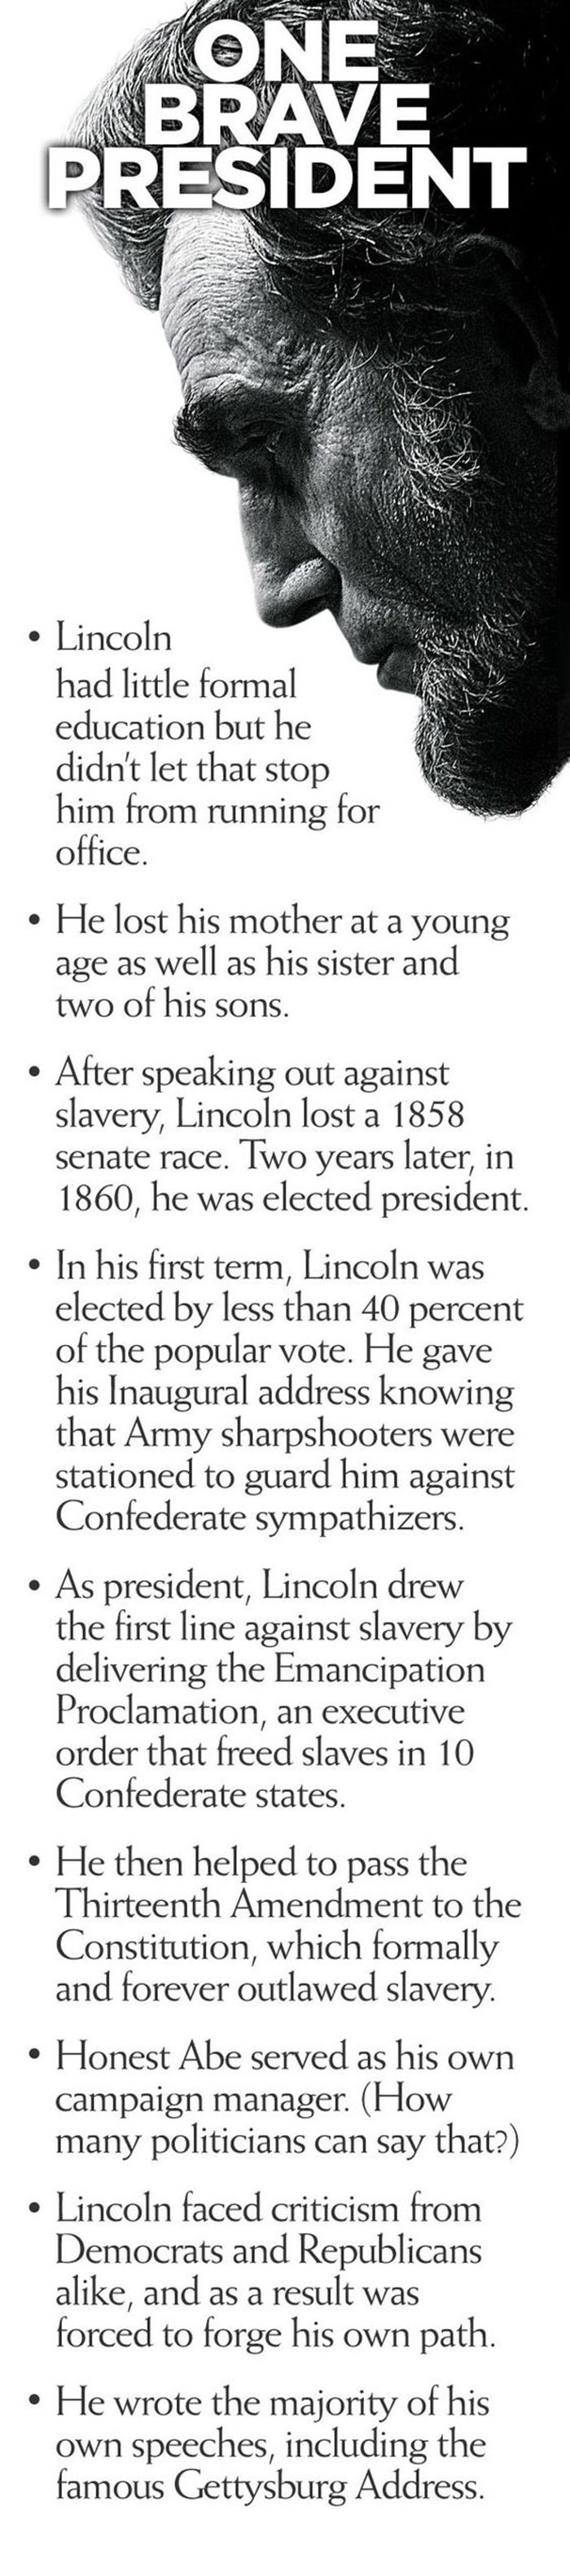 Worksheets Gettysburg Address Worksheet best 25 history of abraham lincoln ideas on pinterest facts kennedy and history